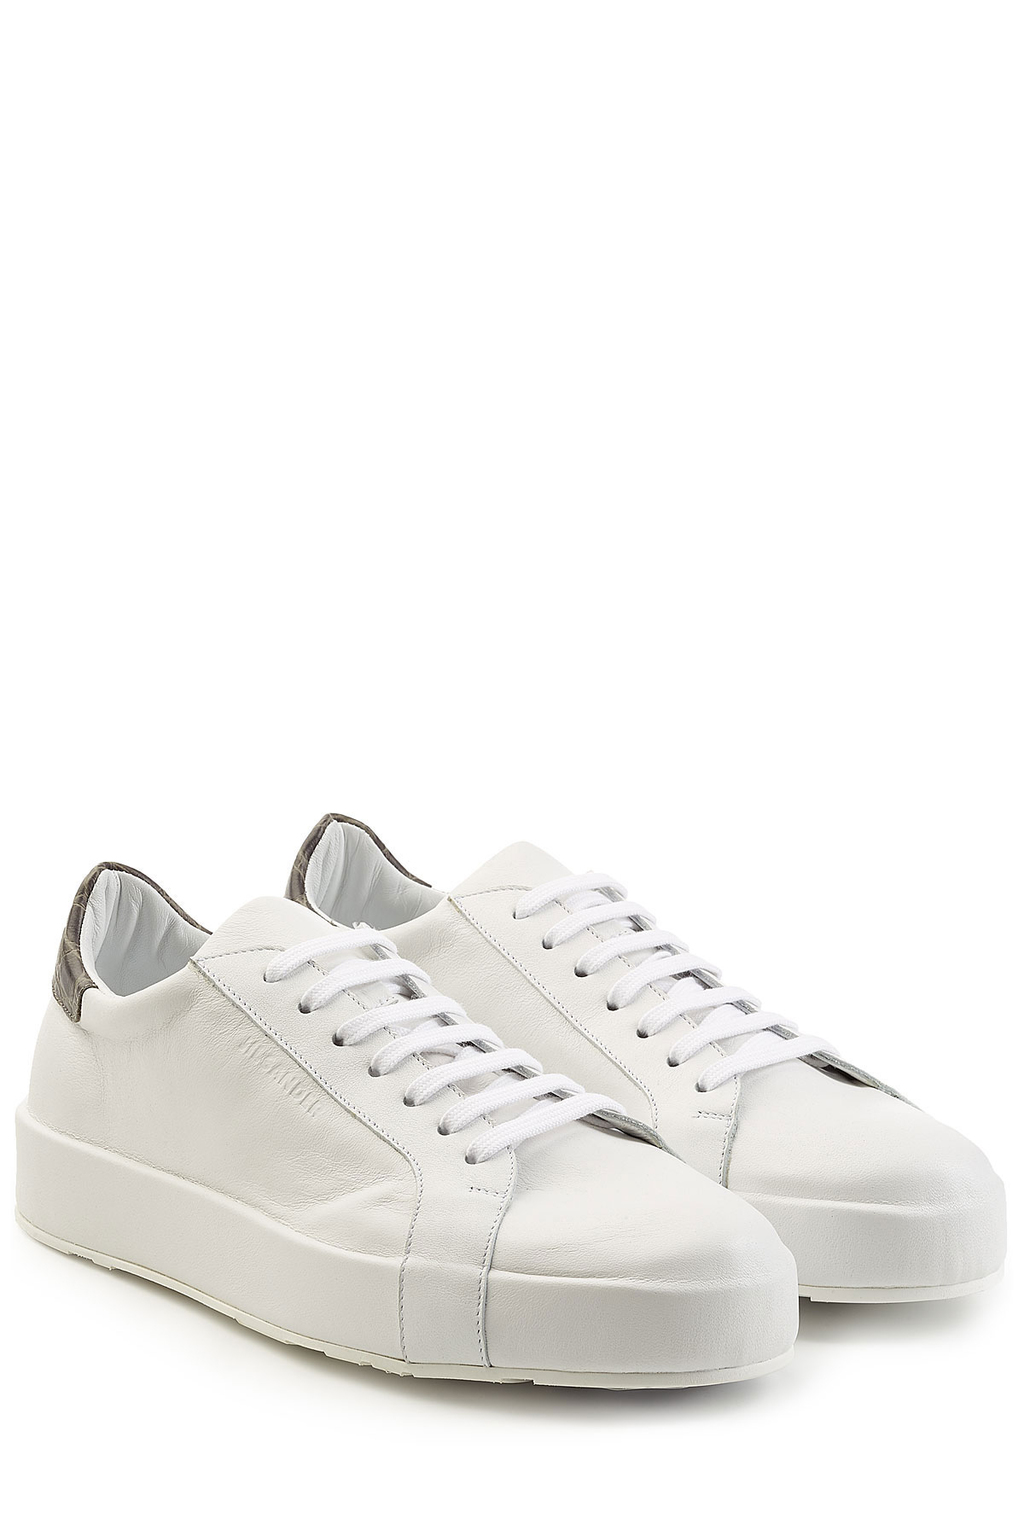 Leather Sneakers - predominant colour: white; occasions: casual, activity; material: leather; heel height: flat; toe: round toe; style: trainers; finish: plain; pattern: plain; season: a/w 2016